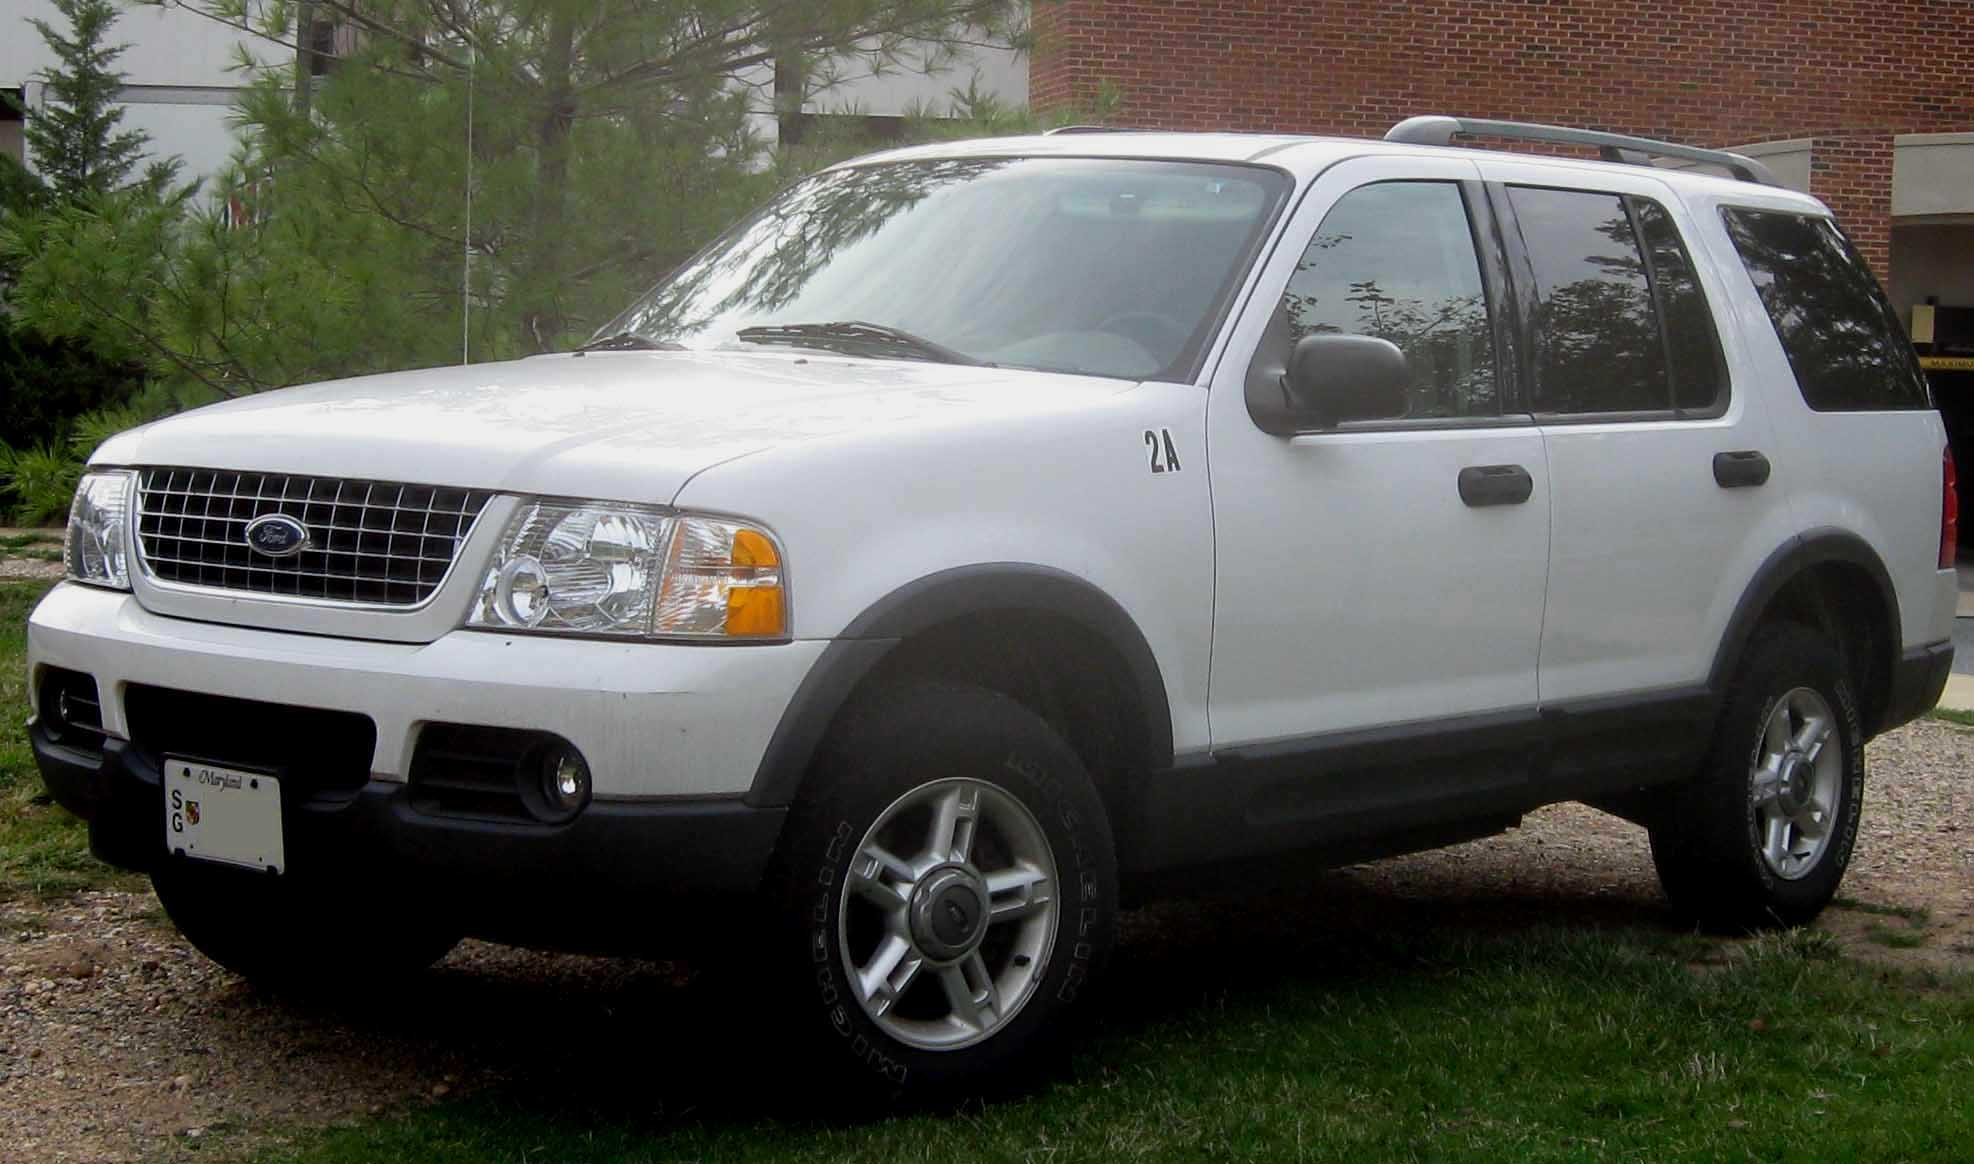 2002 Ford Explorer Image 8